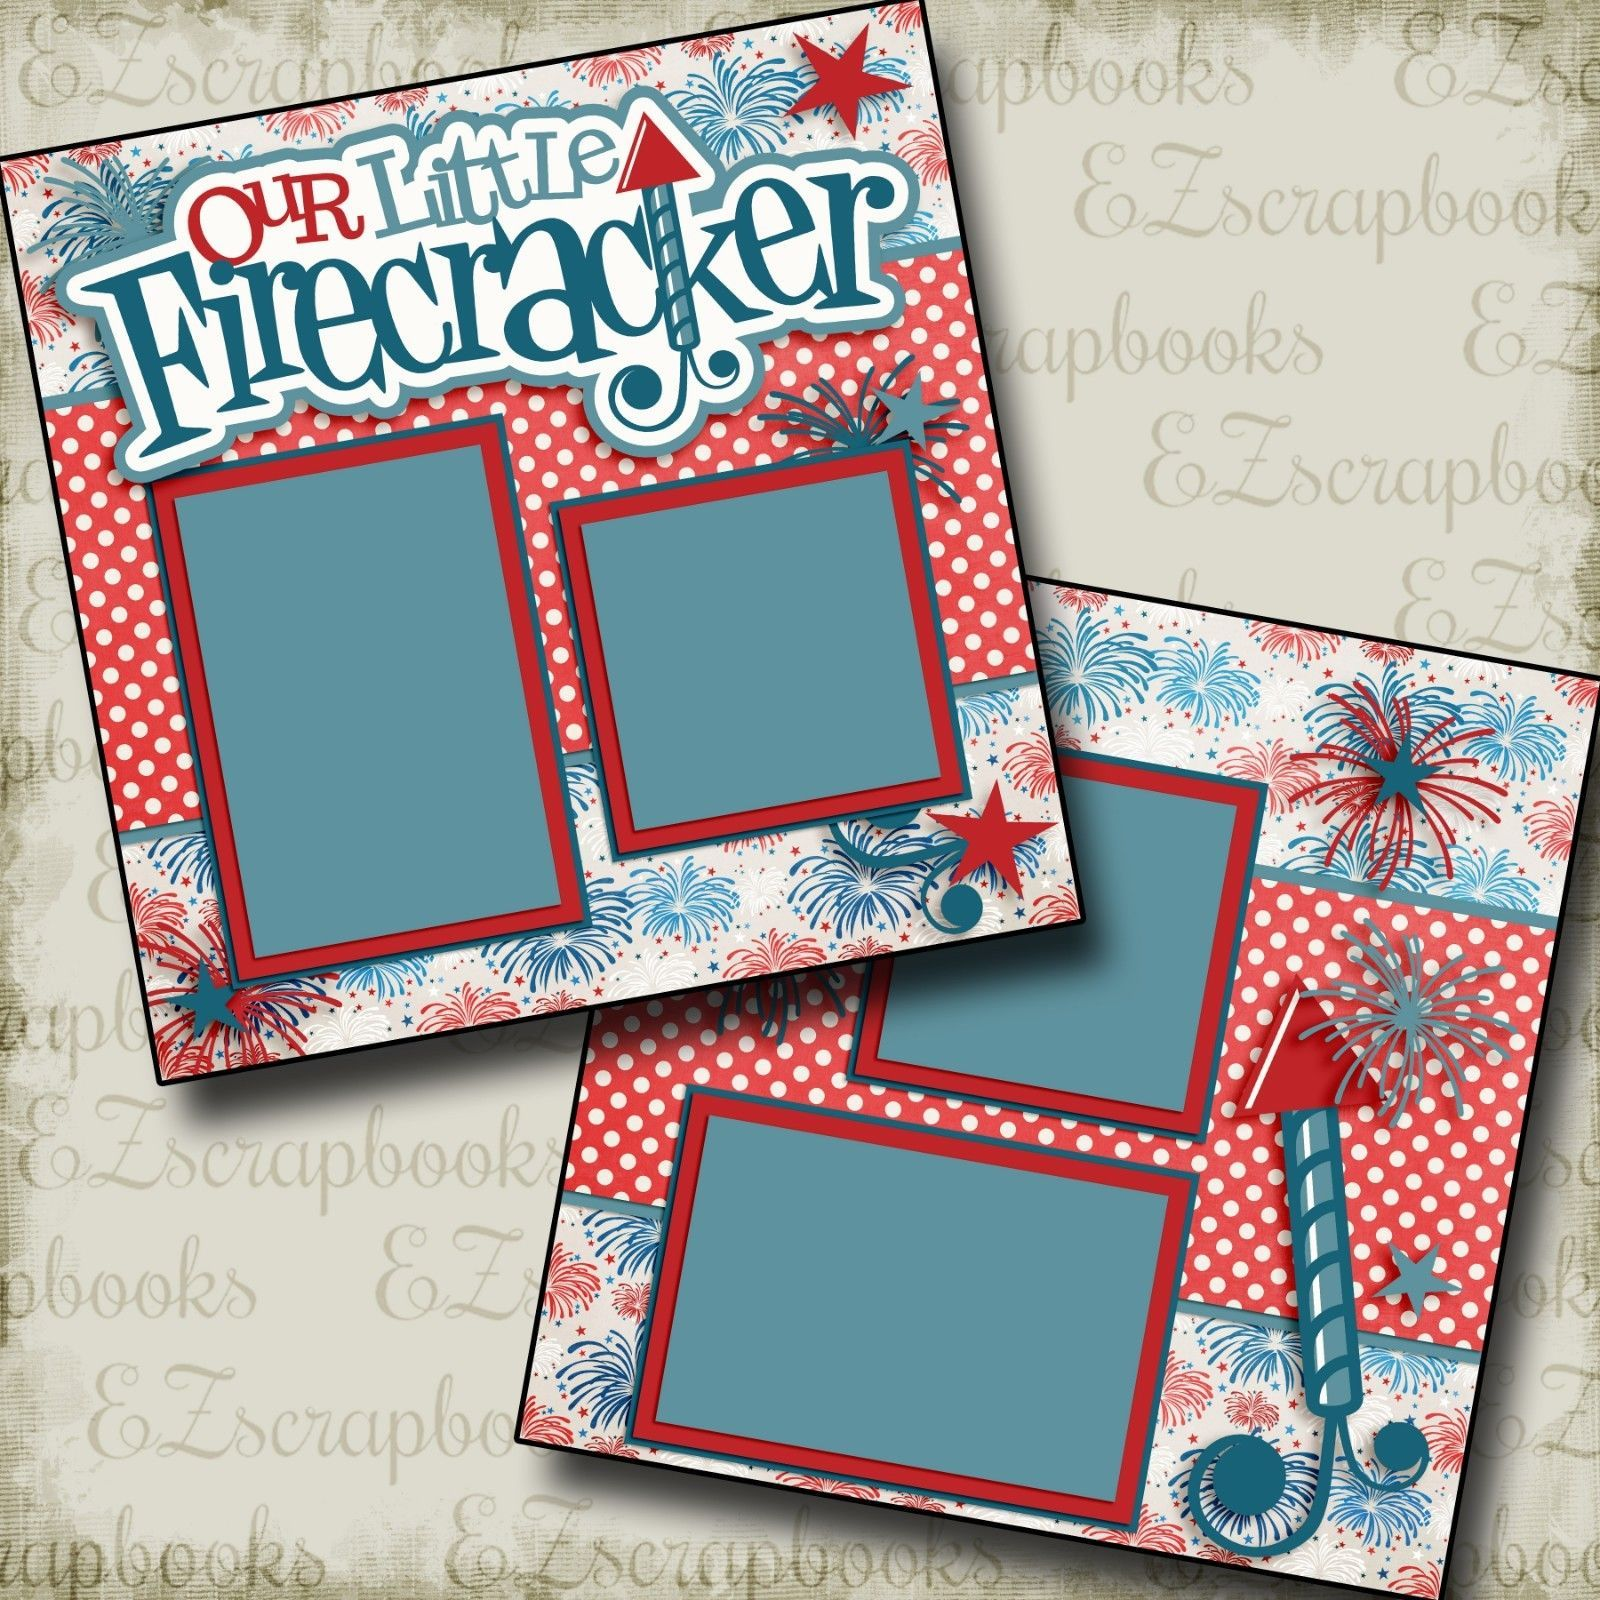 Premade Scrapbook Pages FUN ON THE 4TH EZ Layout 2138